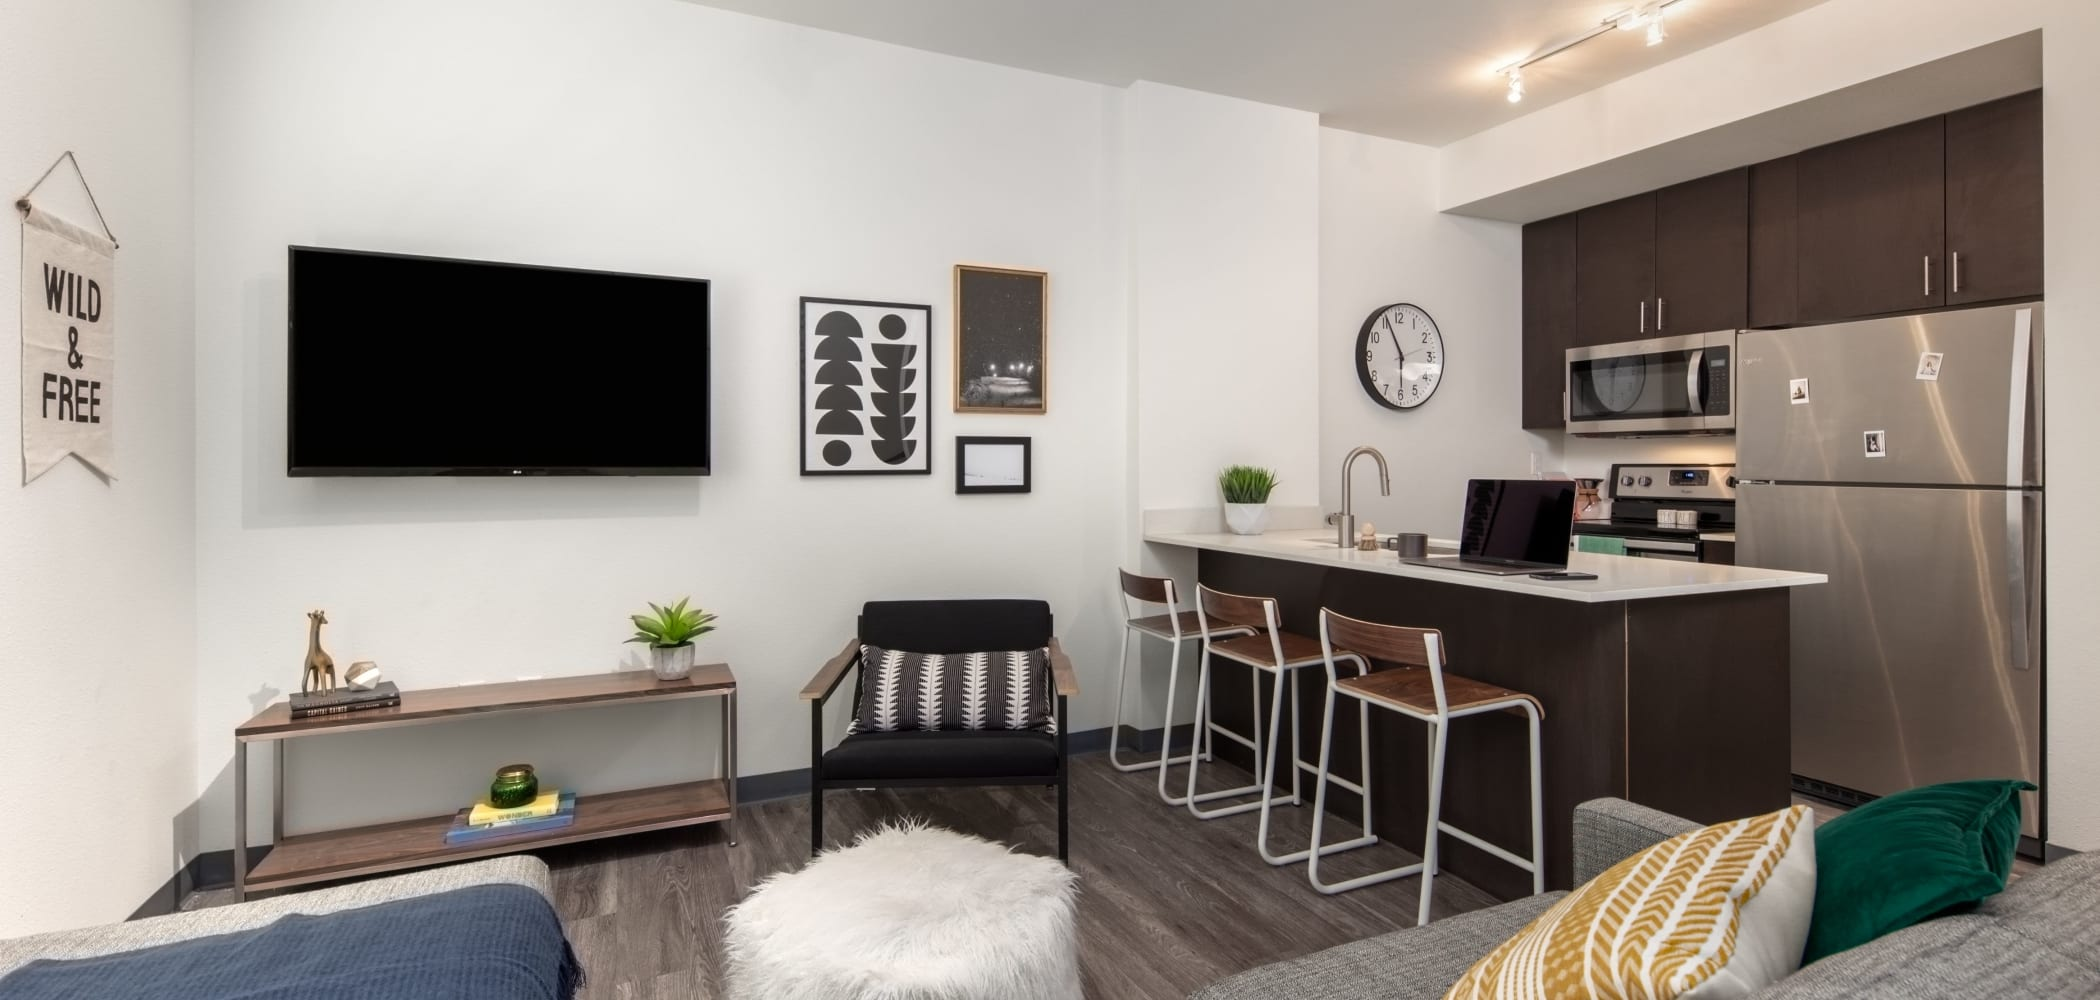 Living room with a smart TV at IDENTITY Moscow in Moscow, Idaho